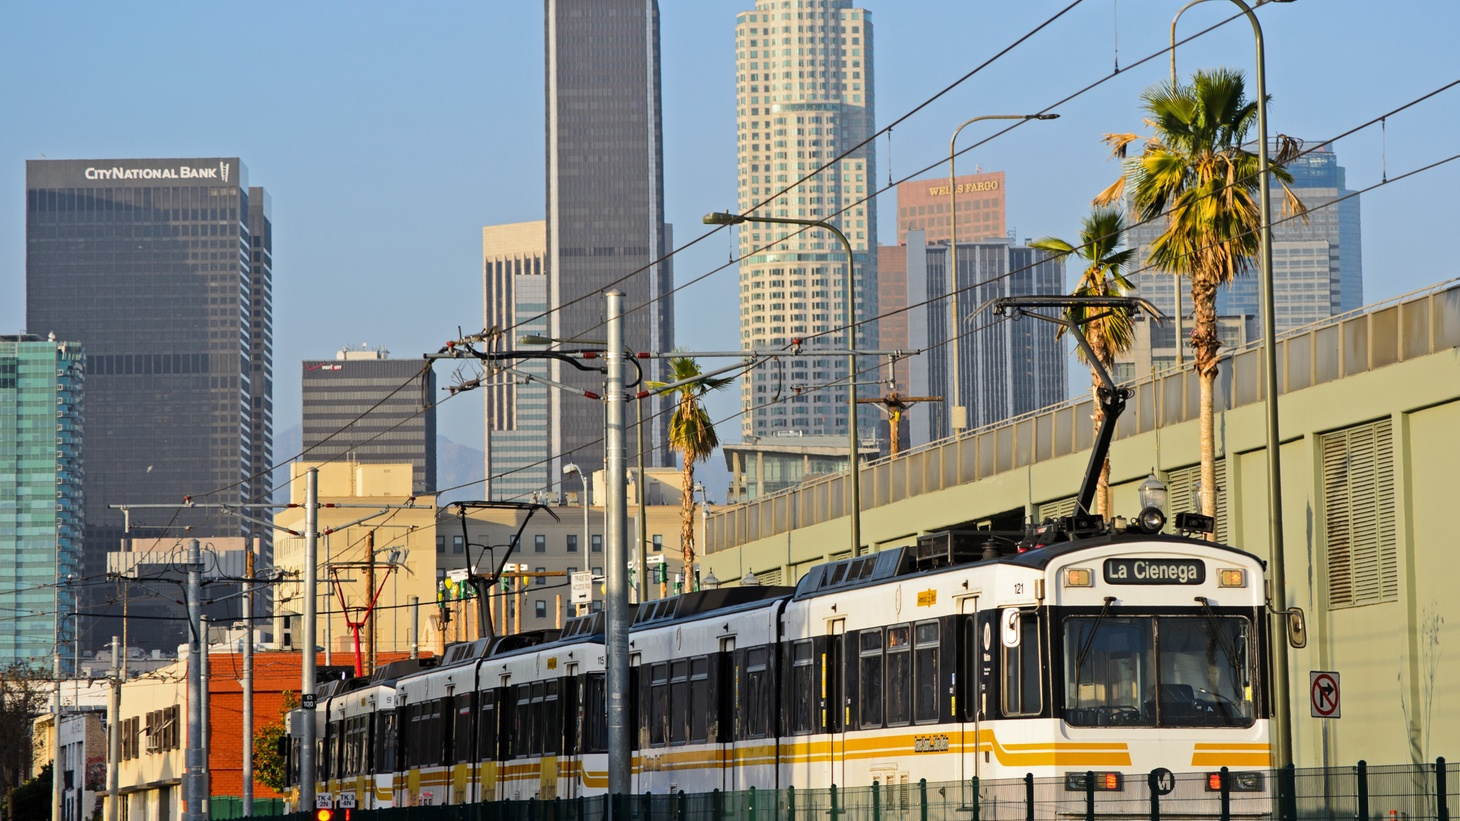 LA County Supervisors voted to place a half-cent sales tax to fund transportation projects on the November ballot. If it passes, how much will the proposed transit projects actually improve quality of life in LA?